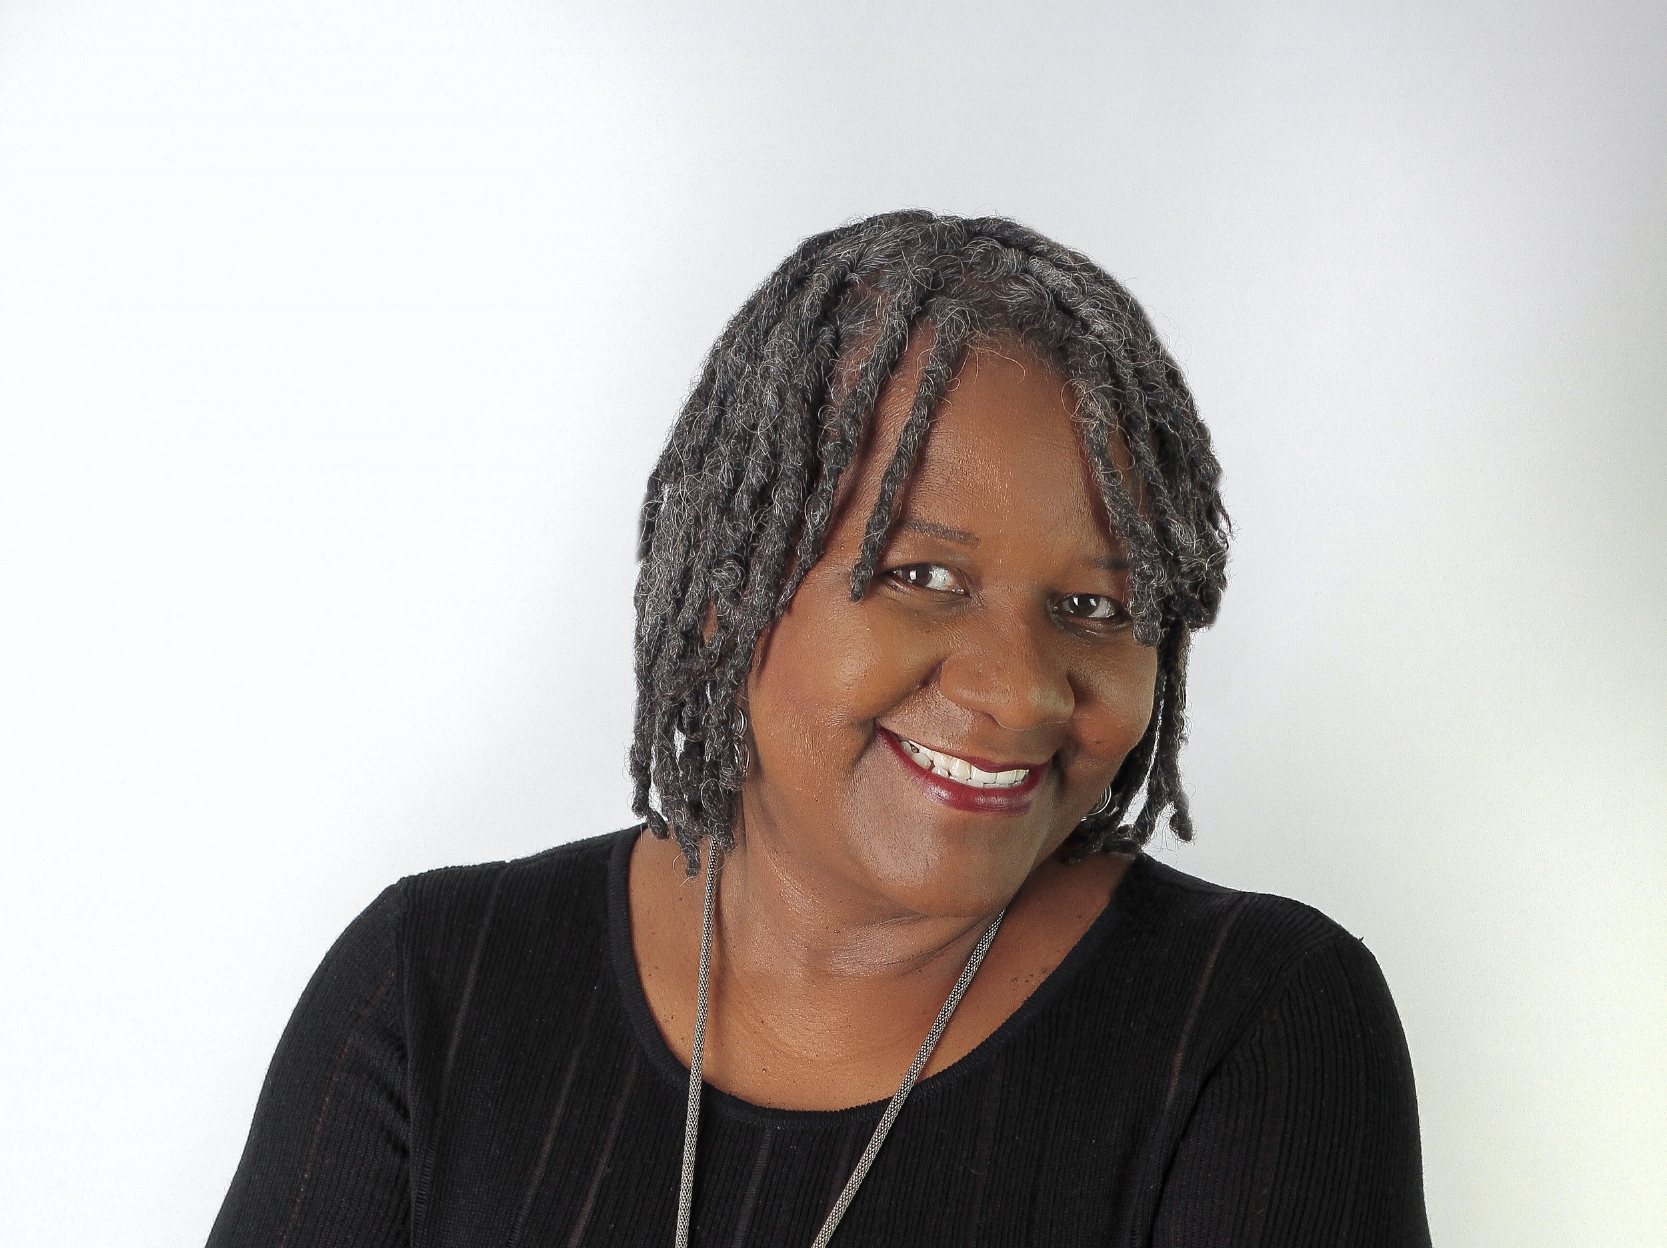 About Marie Kirkland - As a spiritual leader, speaker and coach, Marie shares her voice to inspire and empower people to lean into the life they dream about and take action to create it by living aligned and forward through practical spirituality.